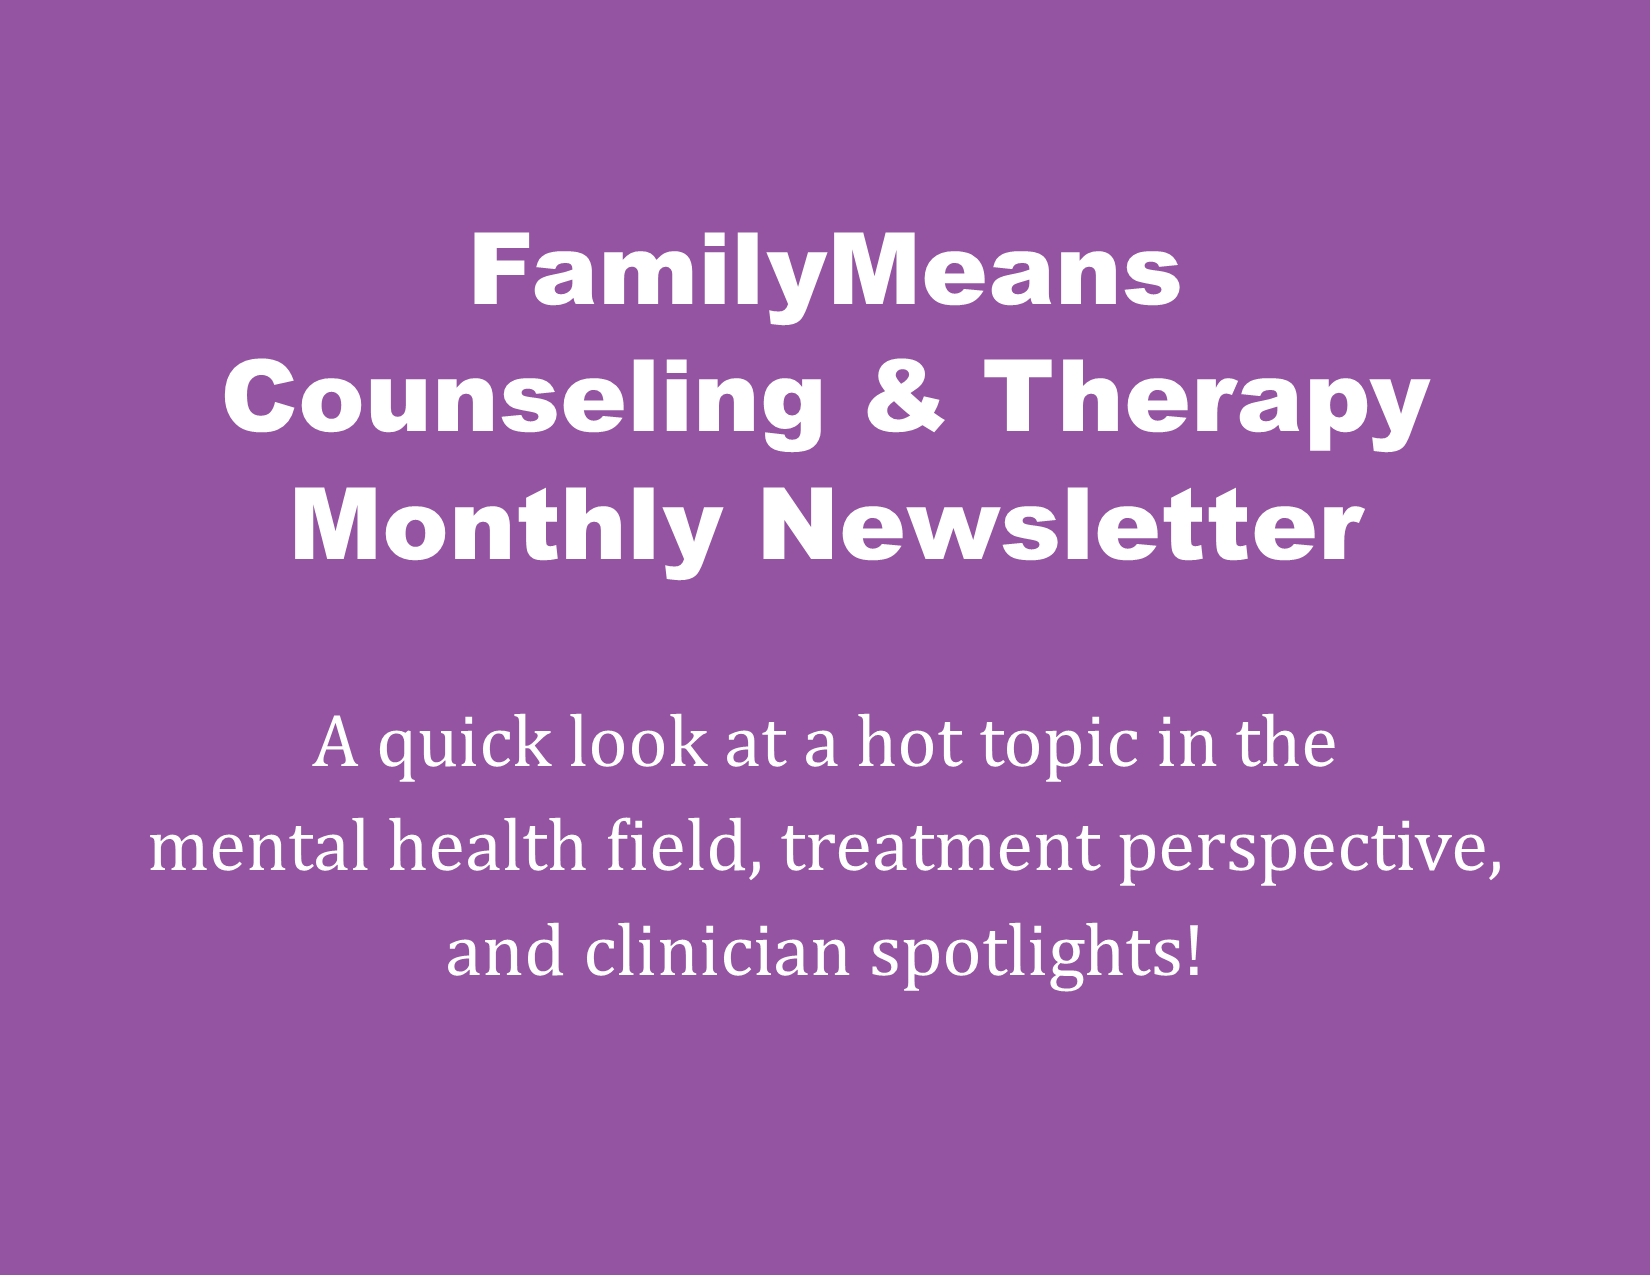 Counseling & Therapy Newsletter February 2021